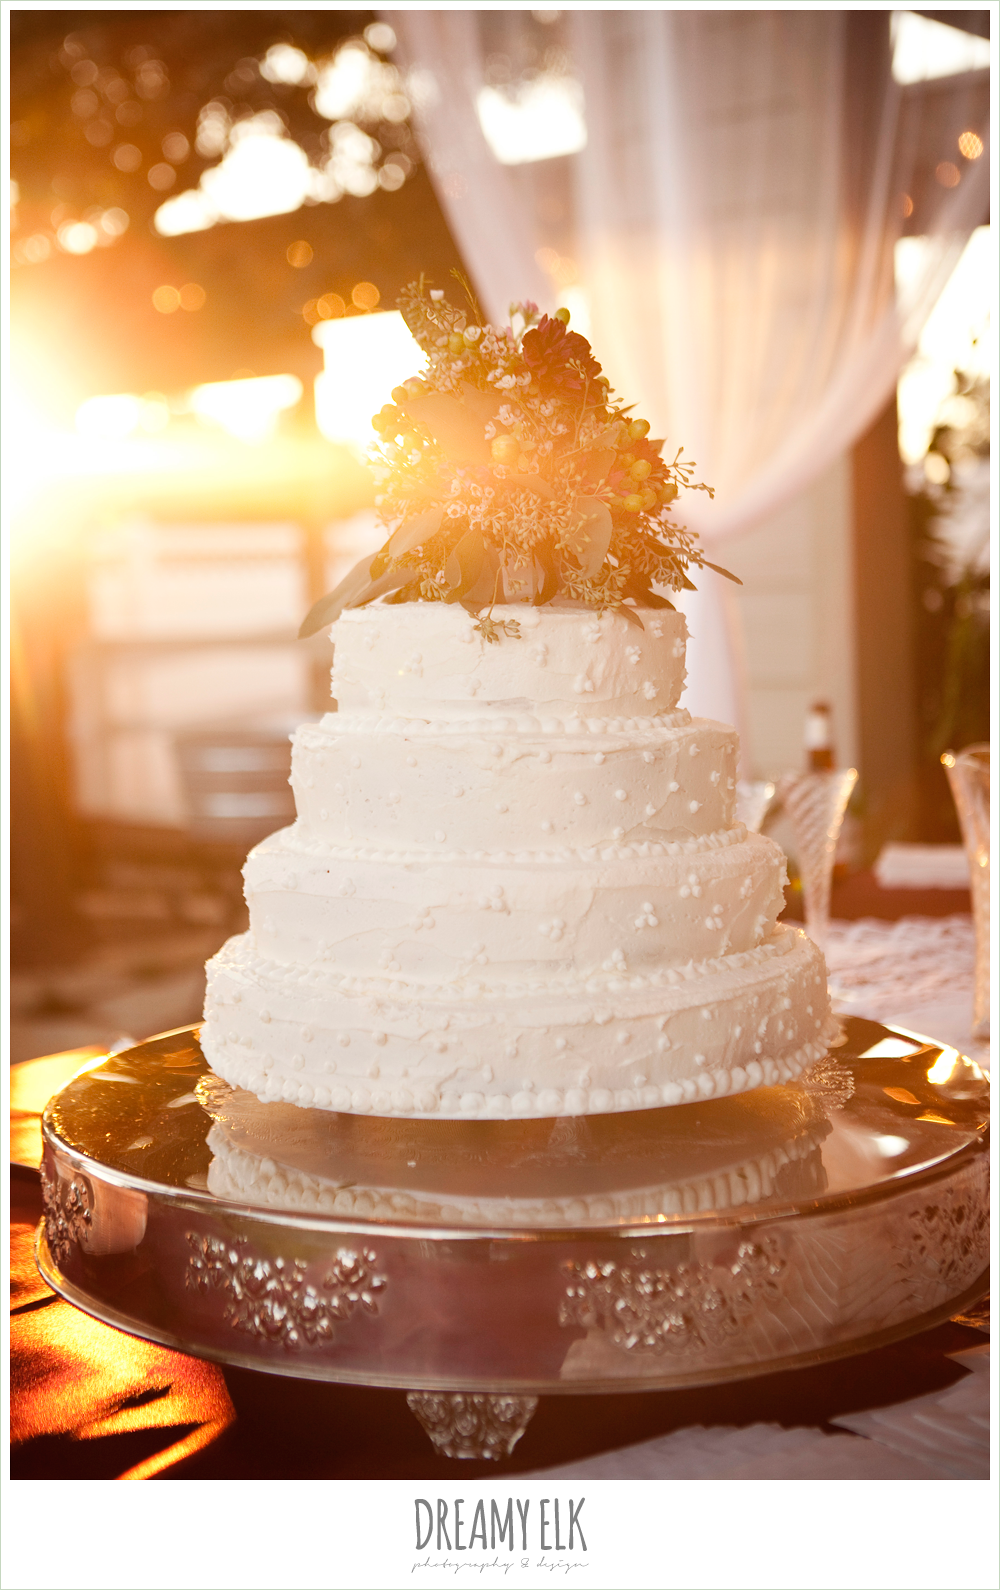 four tiered wedding cake with flowers on top, october wedding, inn at quarry ridge, dreamy elk photography and design